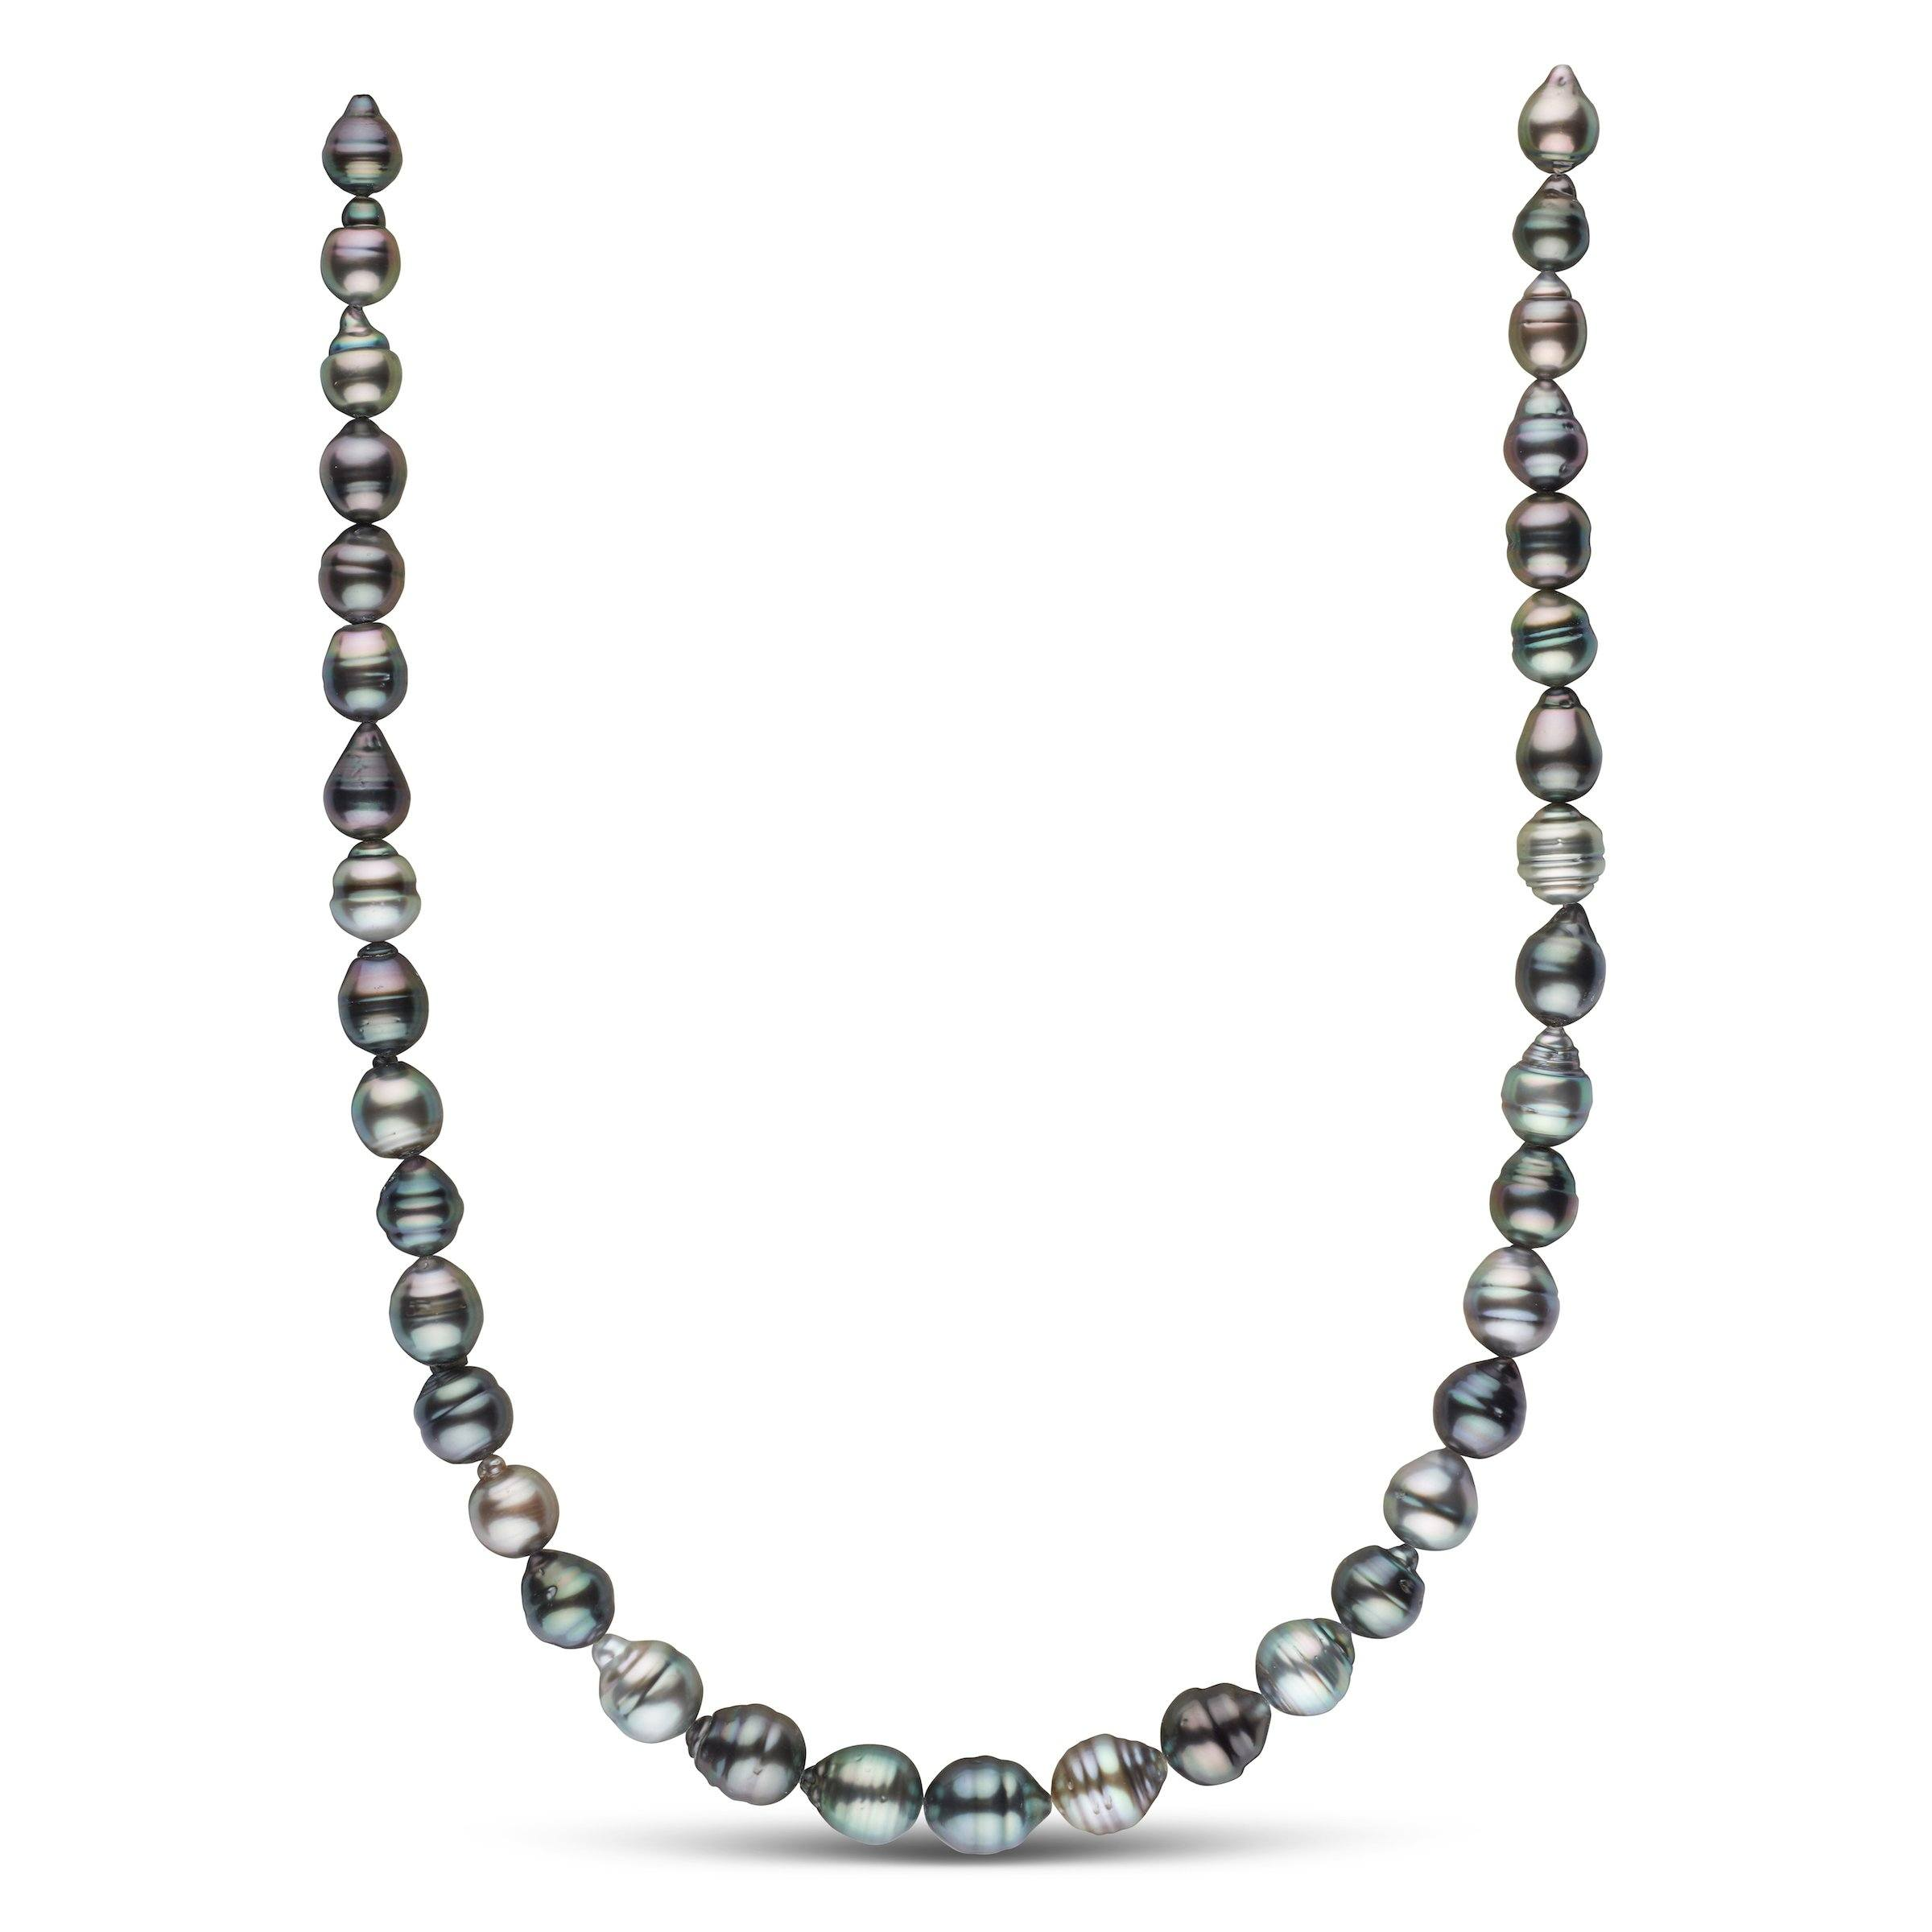 8.2-10.2 mm AA+/AAA Tahitian Baroque Pearl Necklace